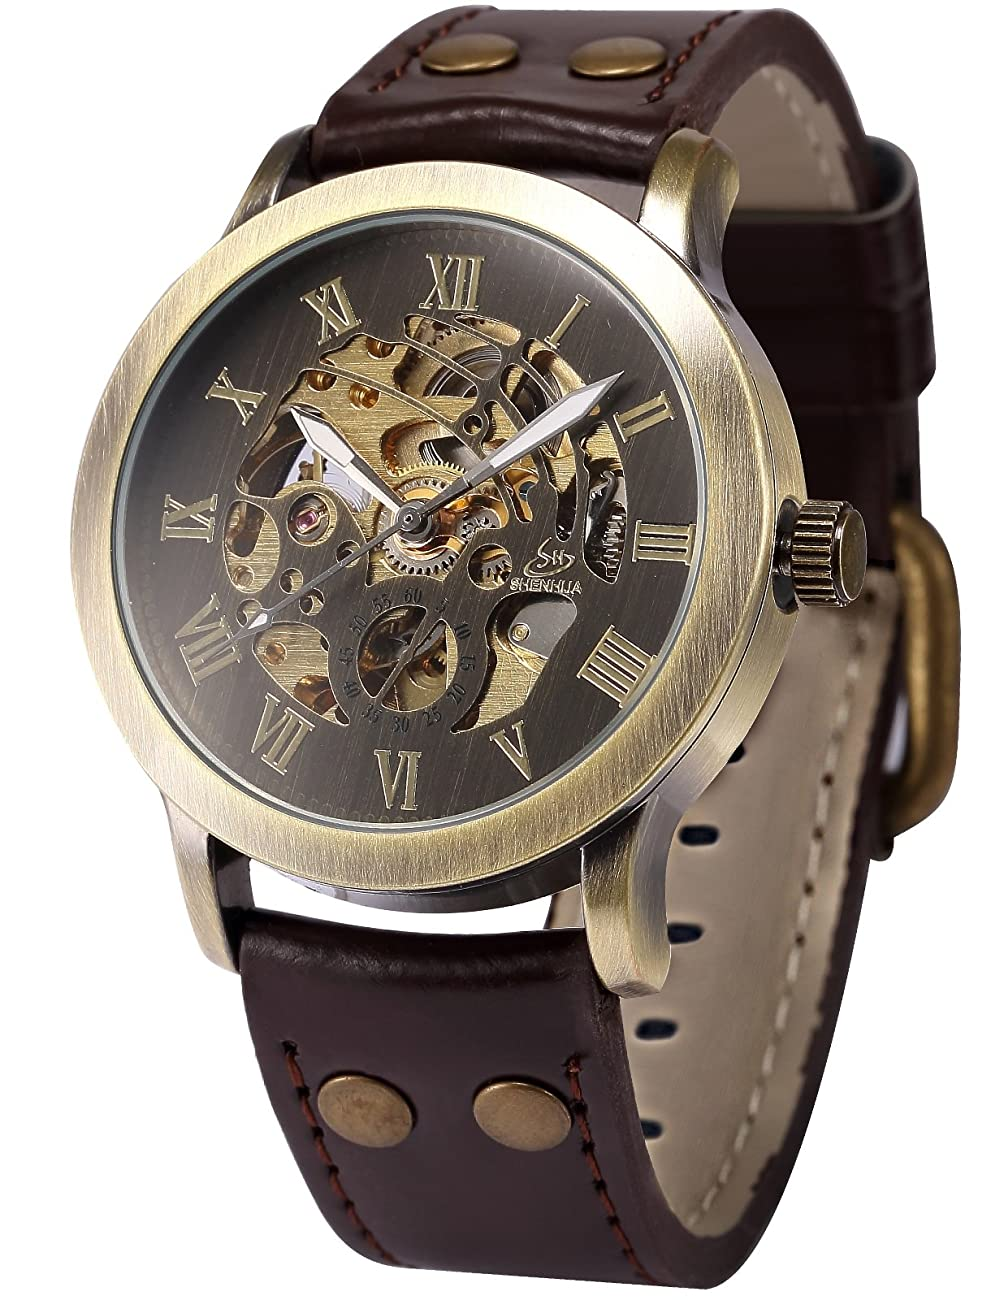 AMPM24 Men's Steampunk Bronze Skeleton Self-Winding Auto Mechanical Leather Wrist Watch PMW198 0